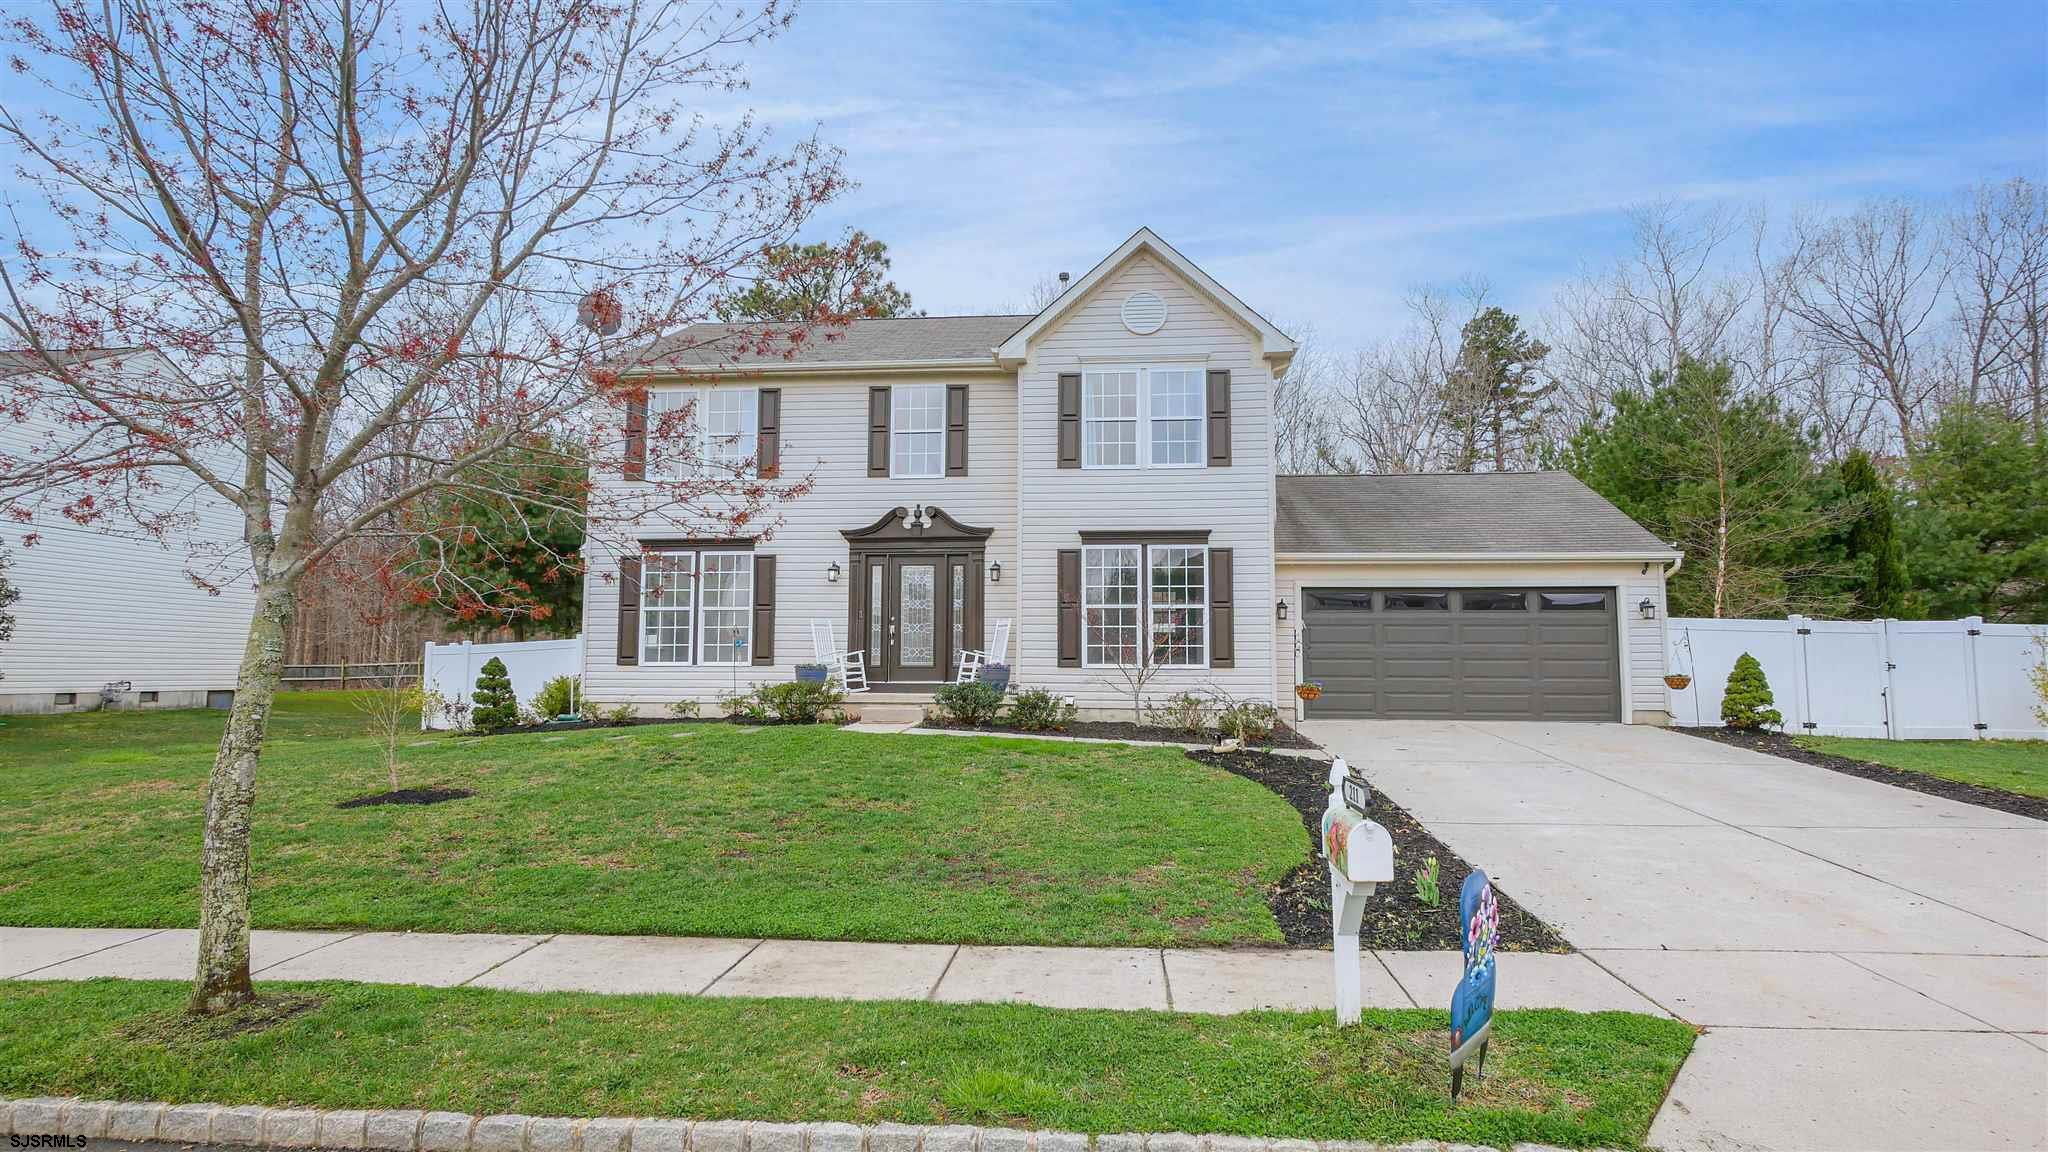 One of the most desirable neighborhoods in EHT.  This house is the perfect location to get wherever